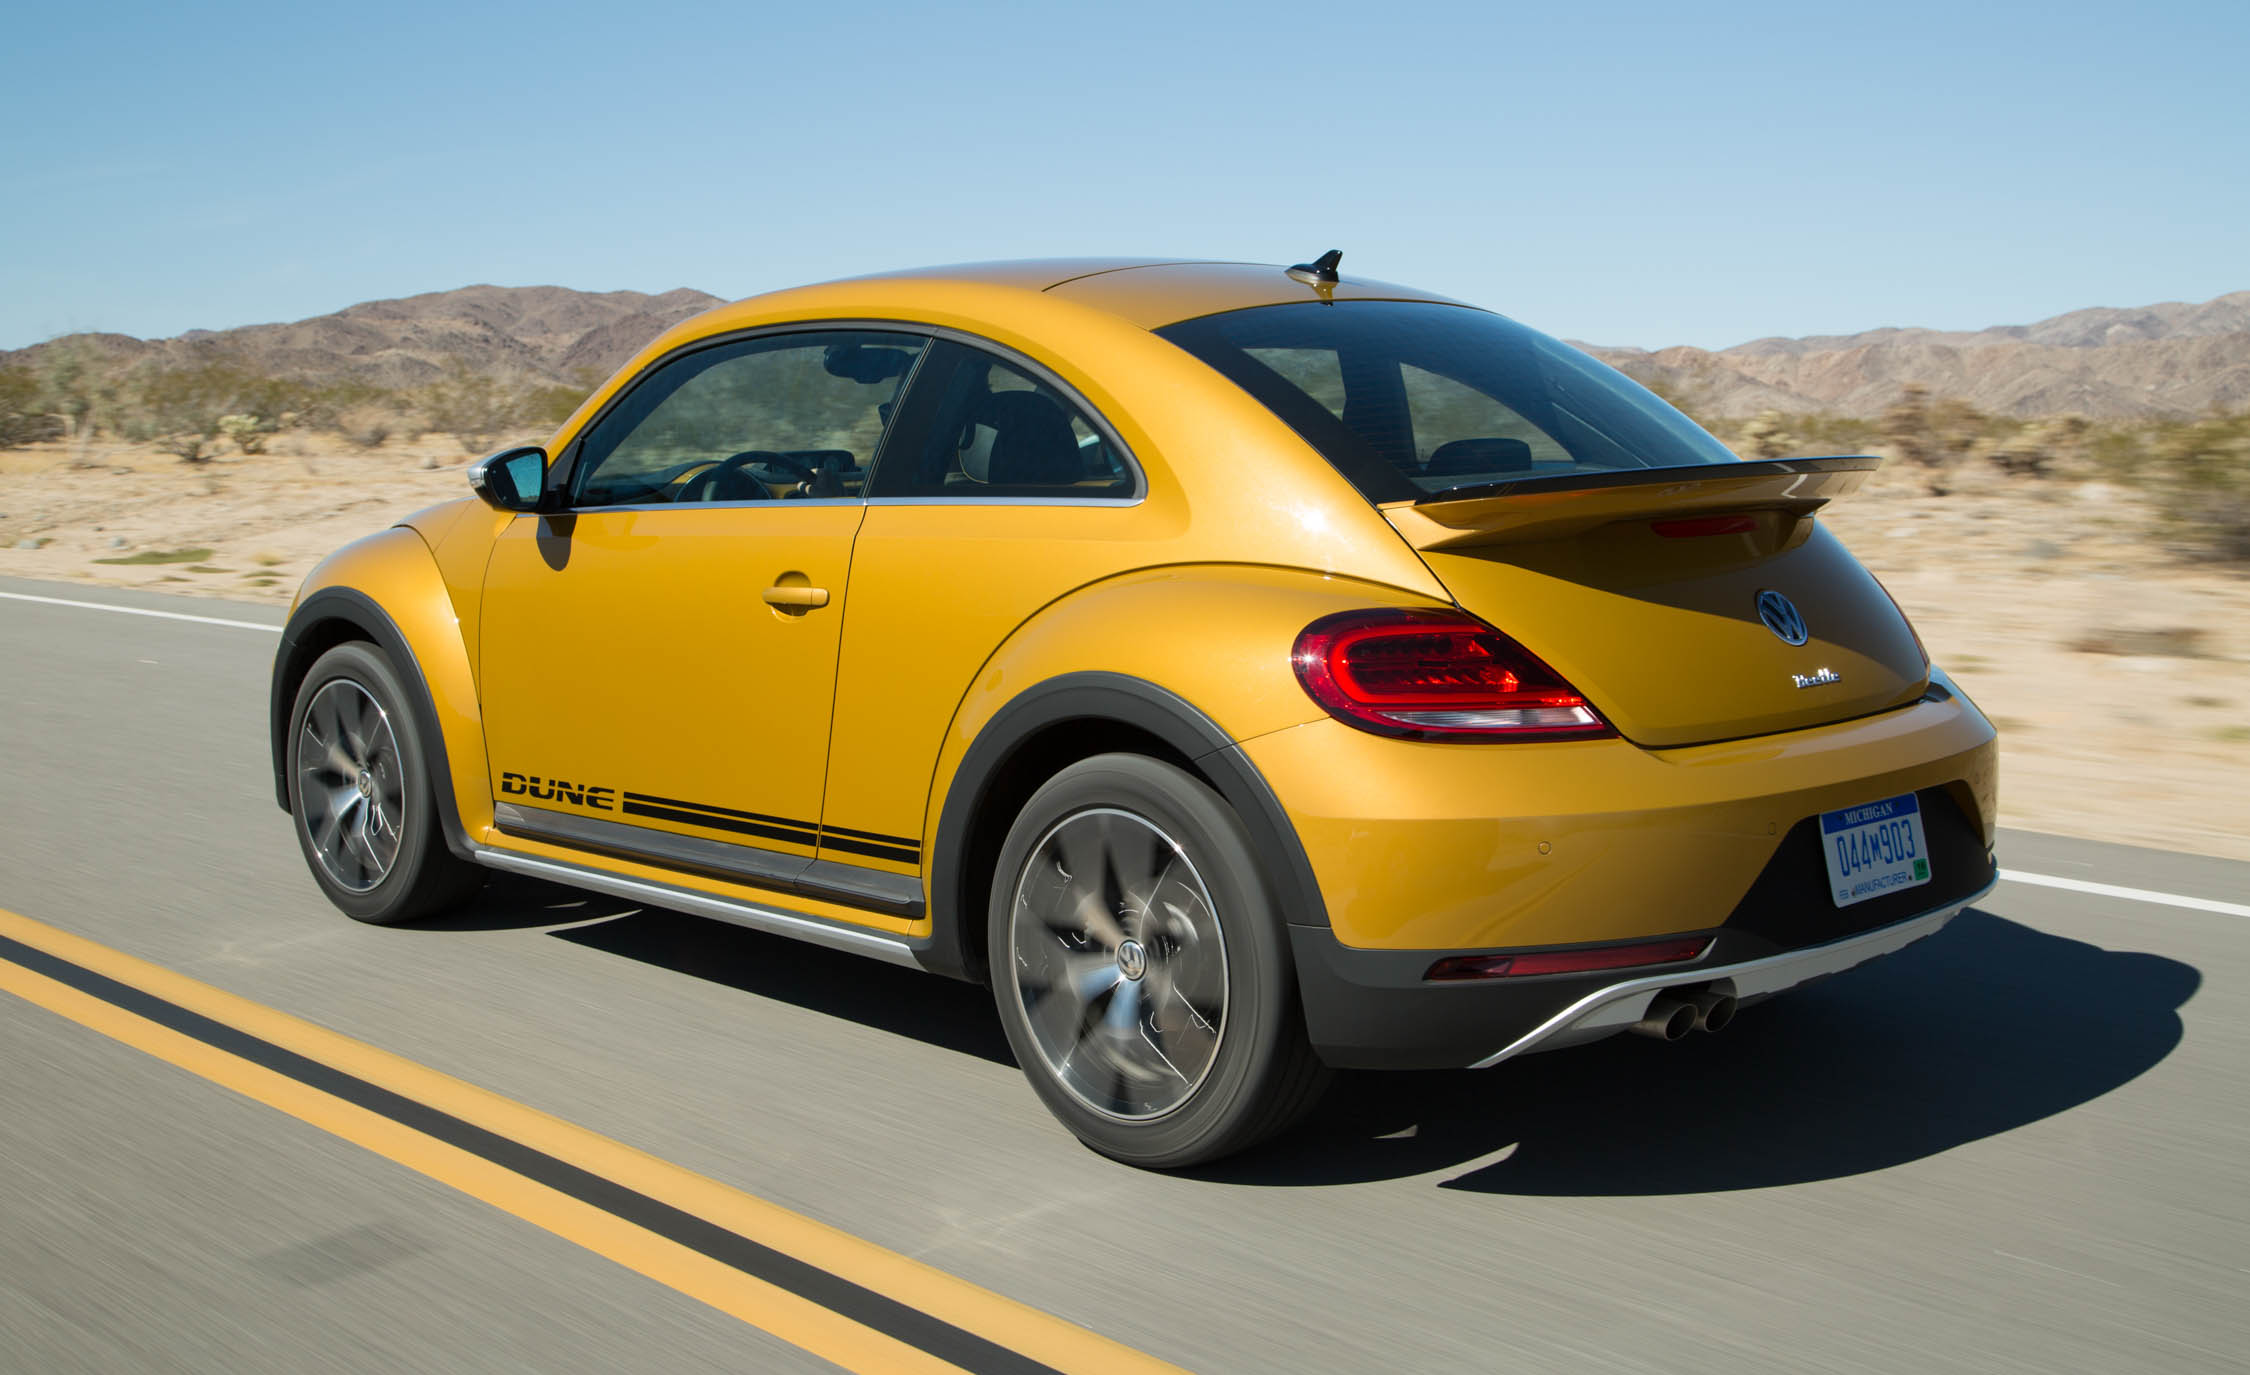 2016 Volkswagen Beetle Dune Coupe Rear Side (Photo 16 of 32)